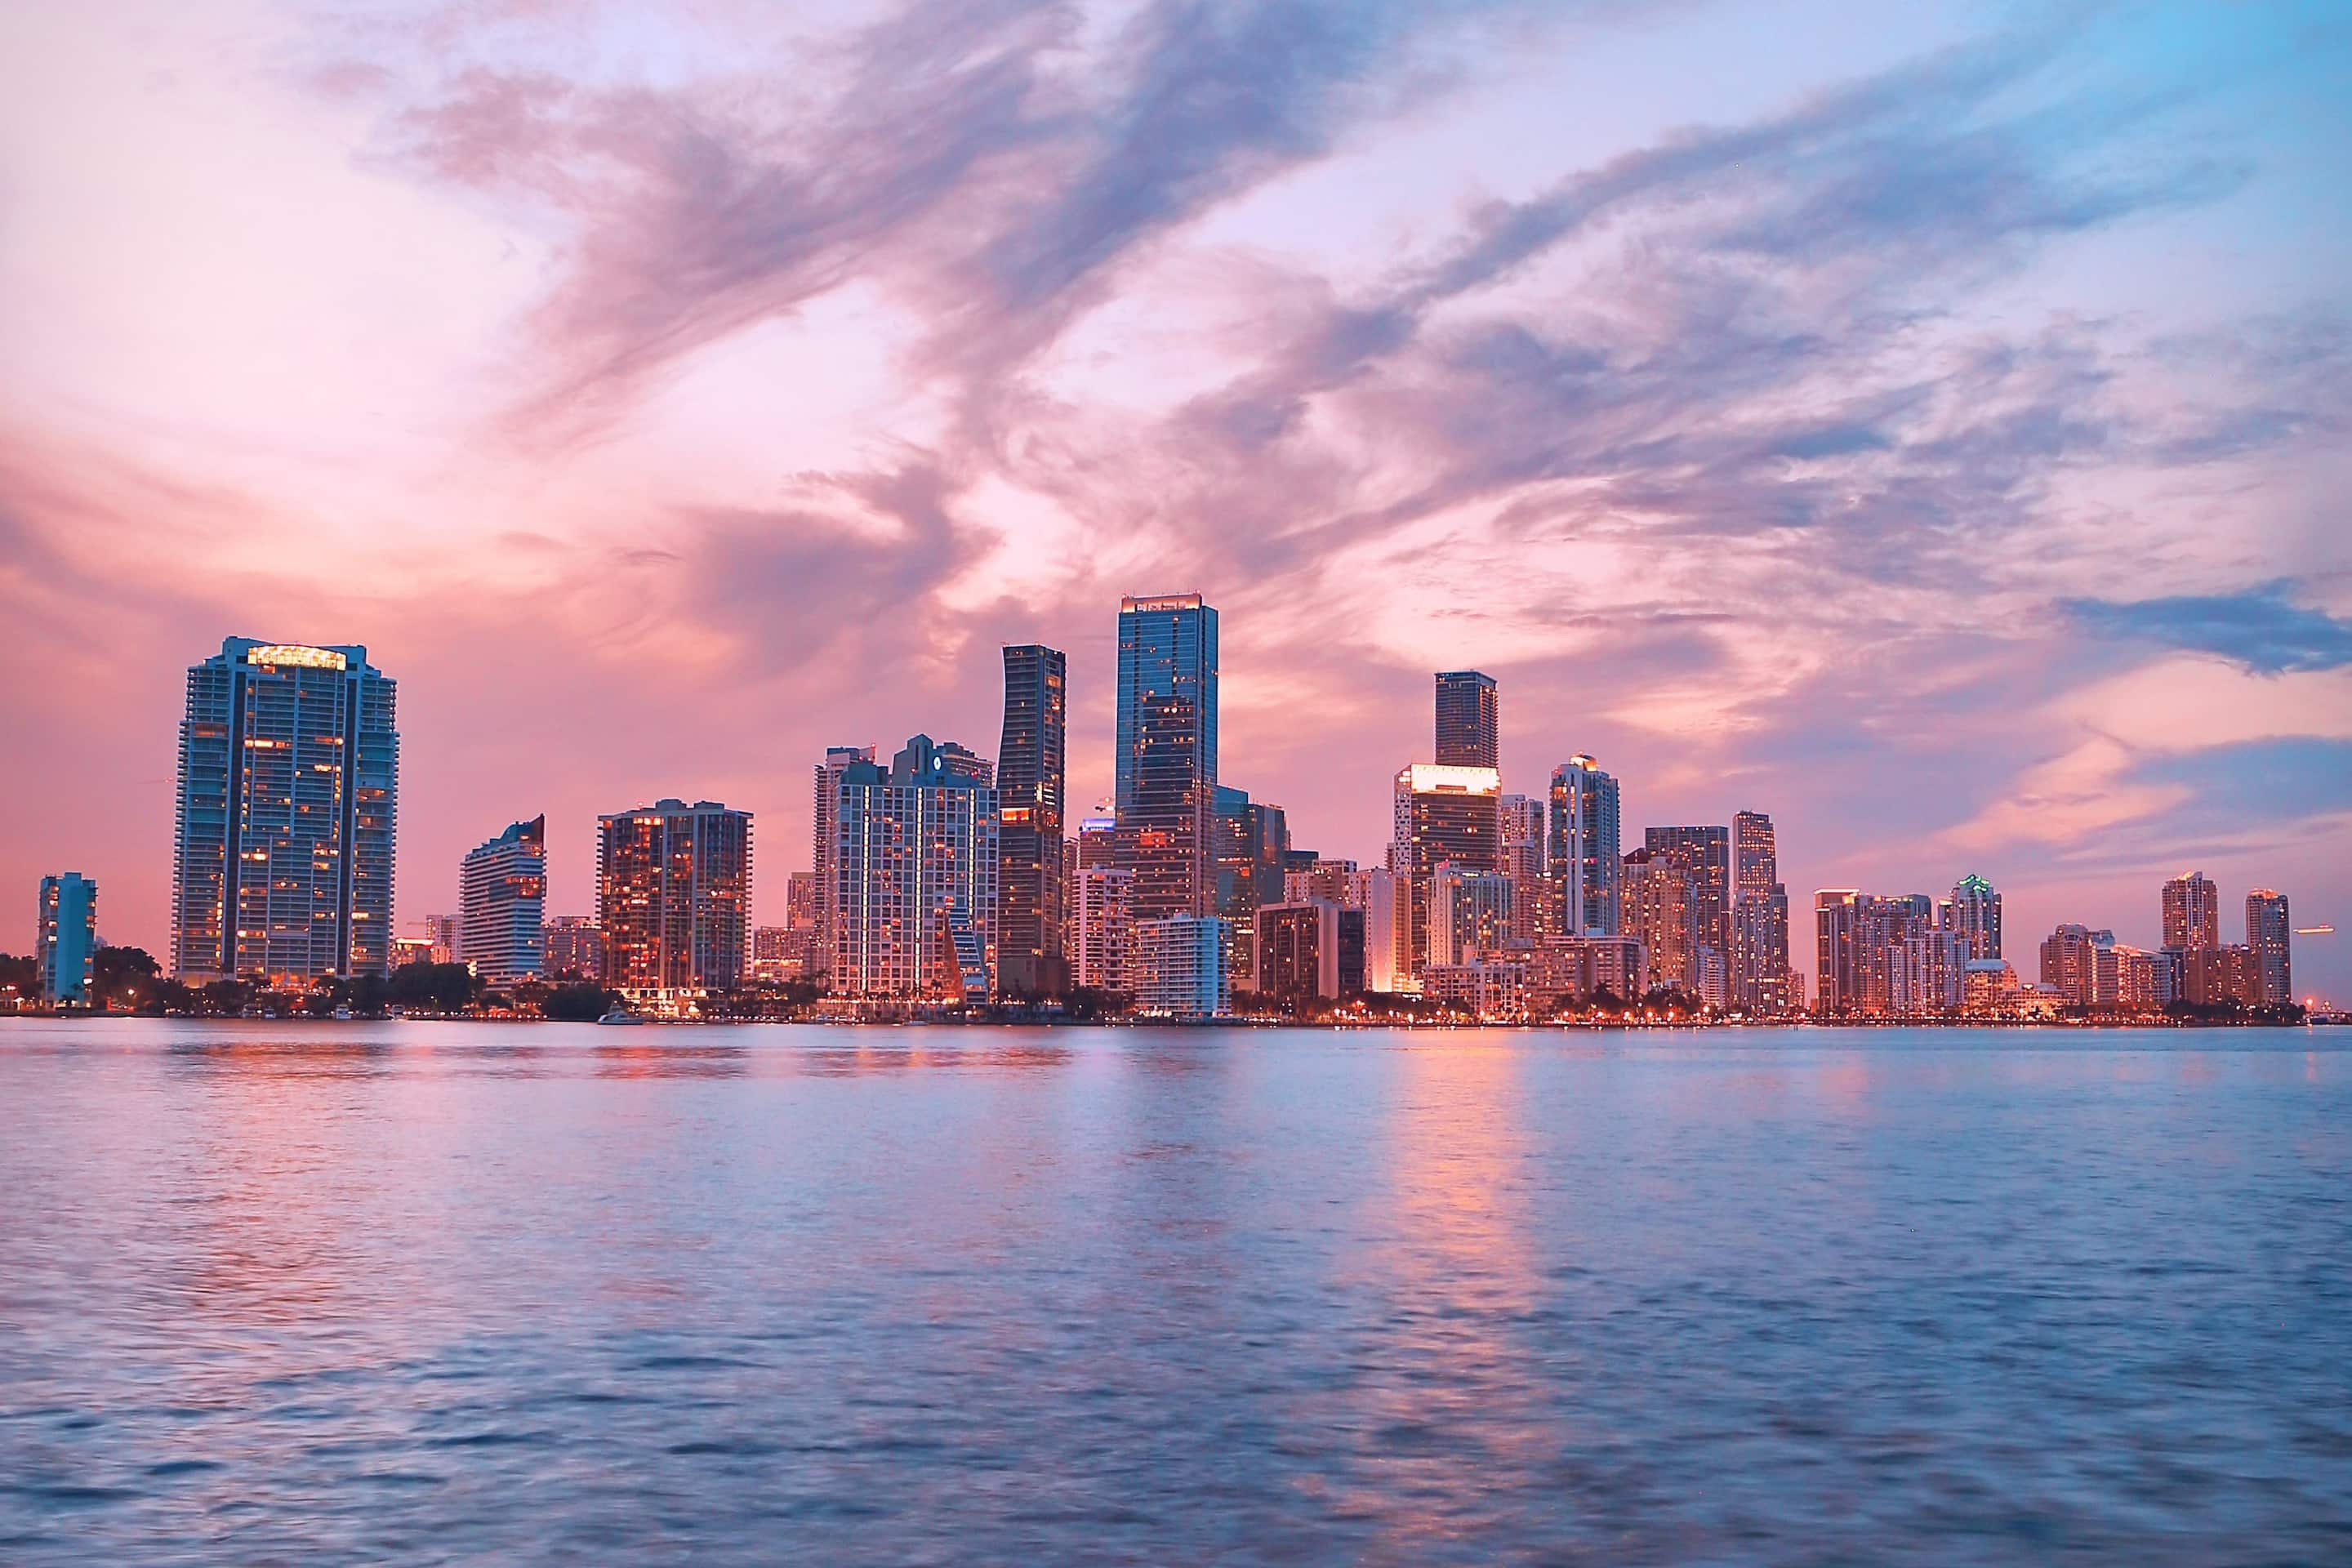 The Miami skyline at night from the water